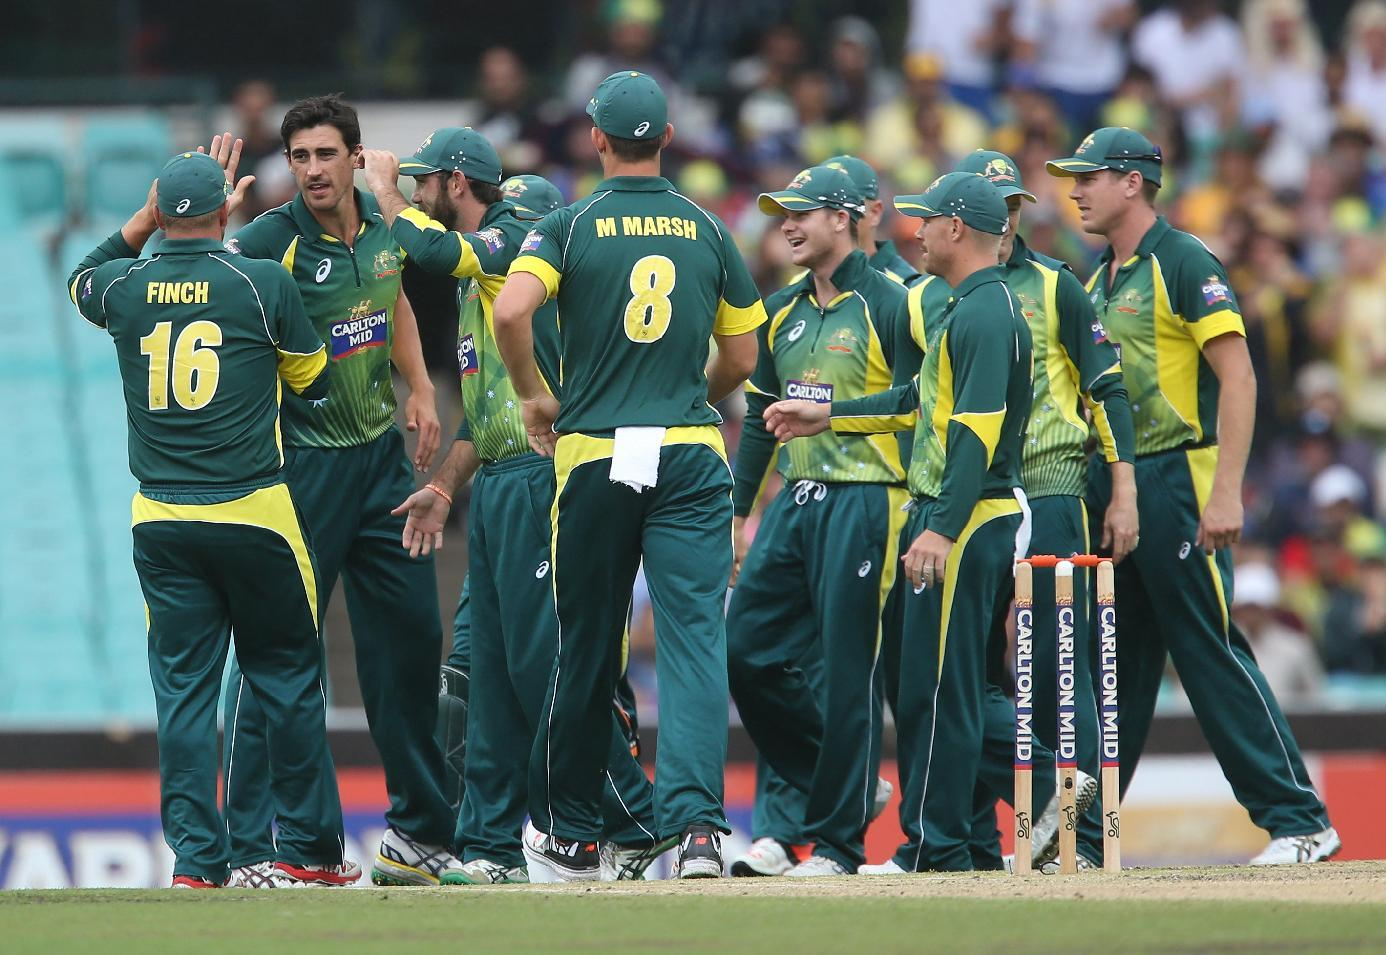 Cricket World Cup to showcase both elite and paupers